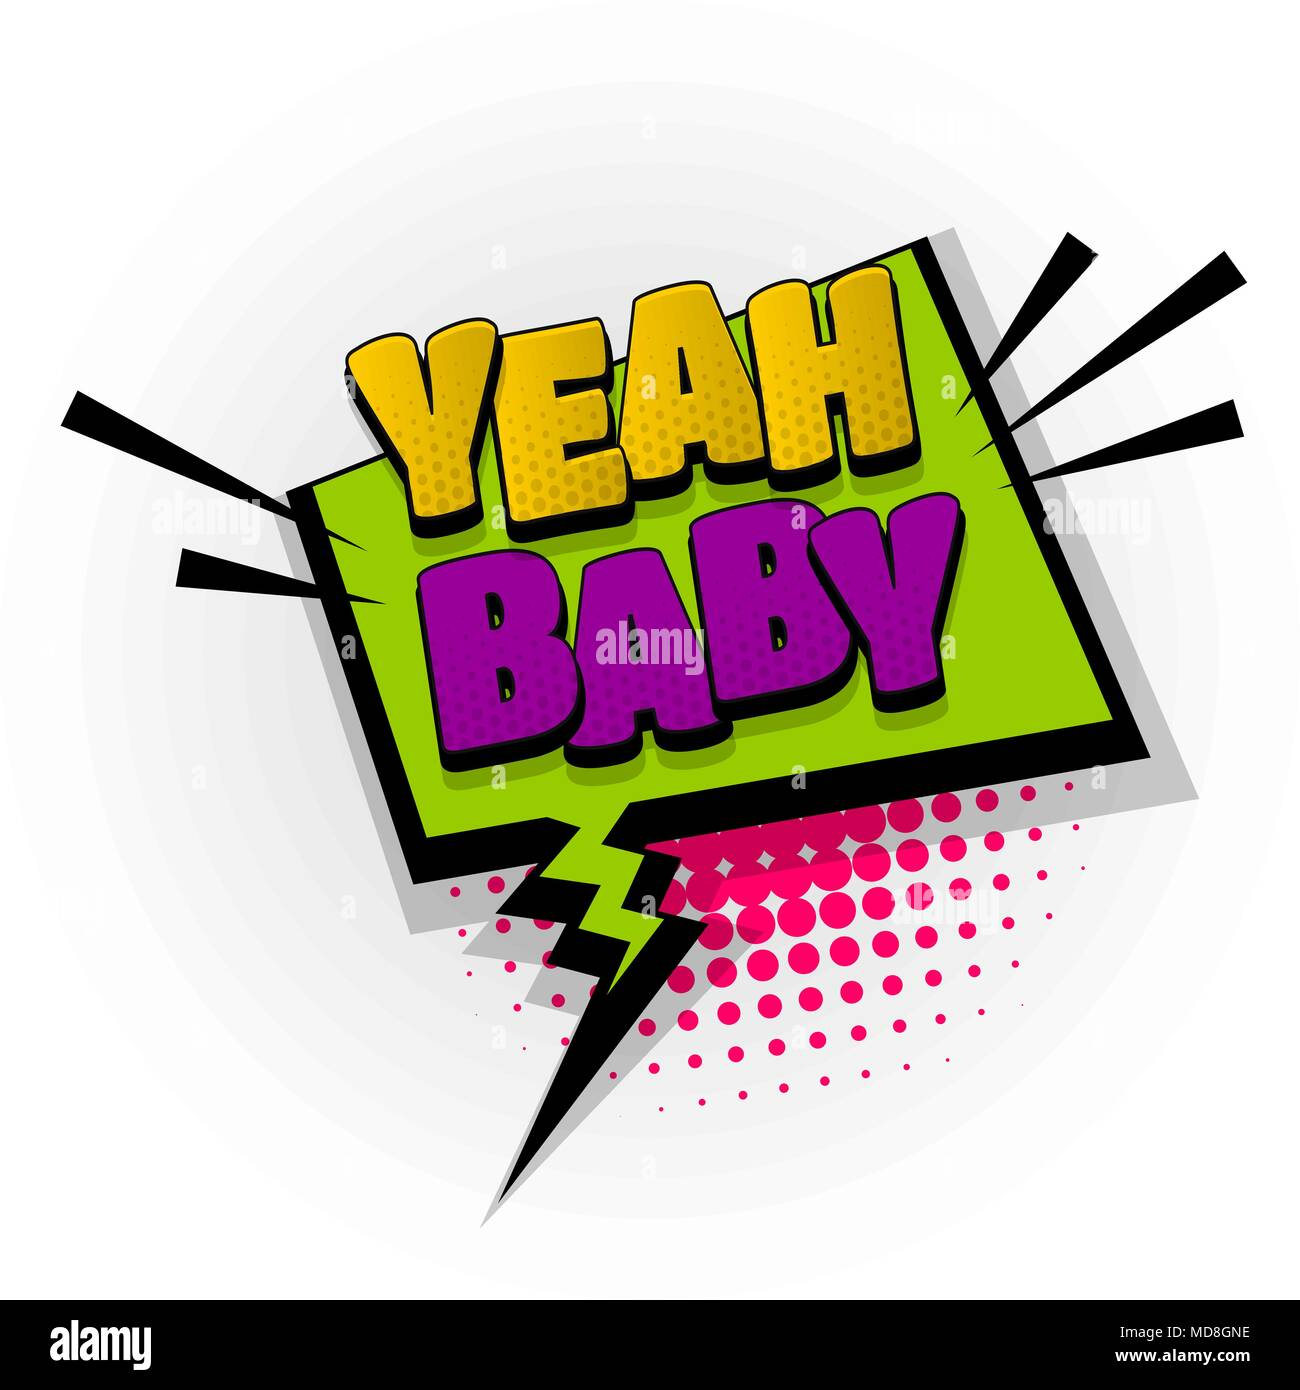 yeah baby comic book text pop art stock vector art illustration